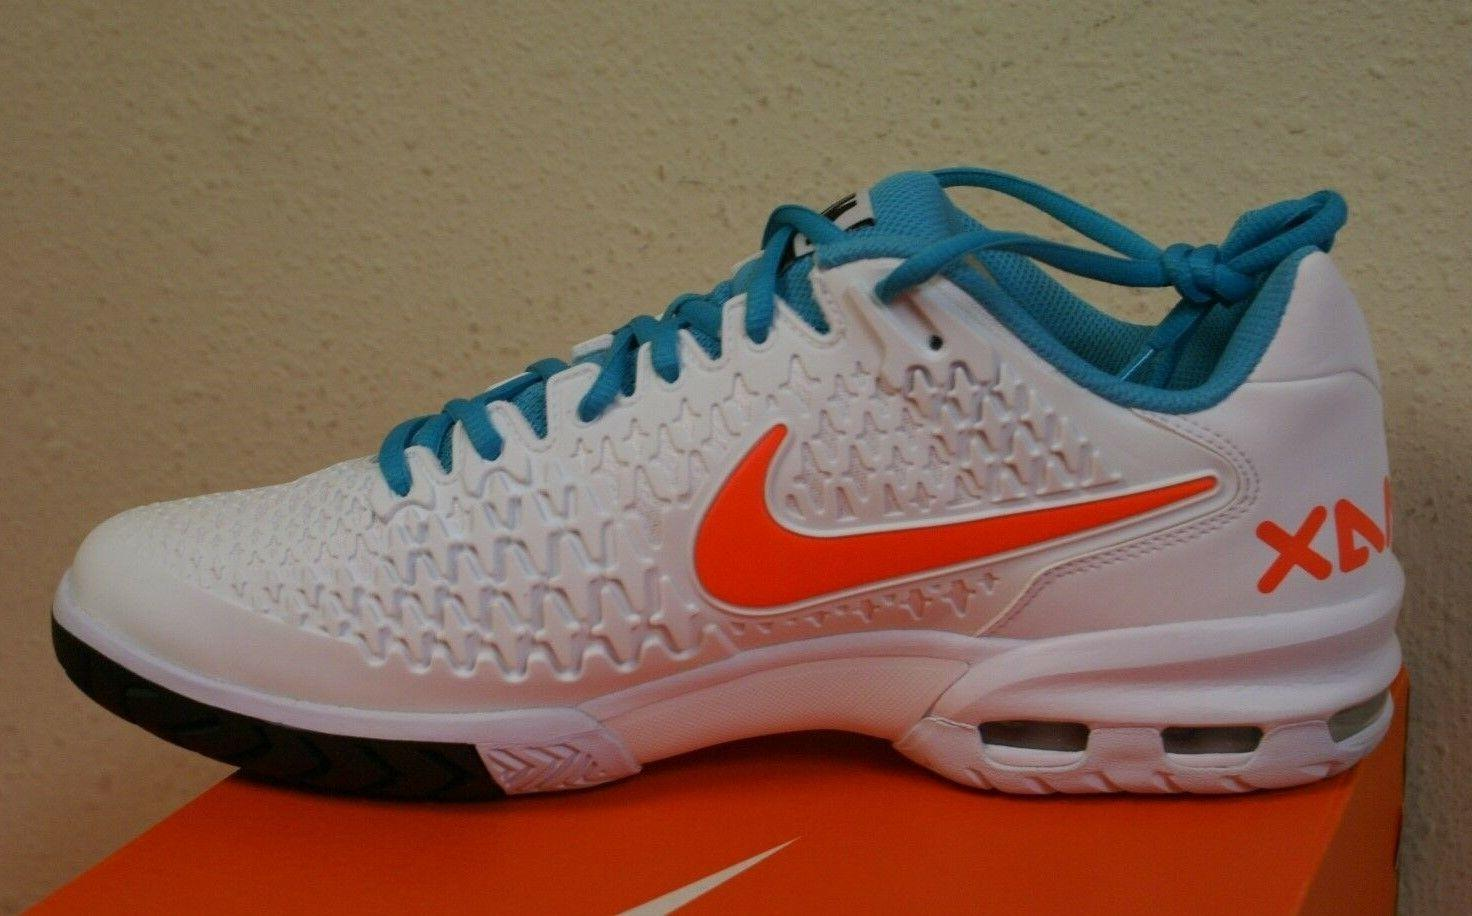 Nike Men's Air Max Cage Tennis Shoe Style 554875183